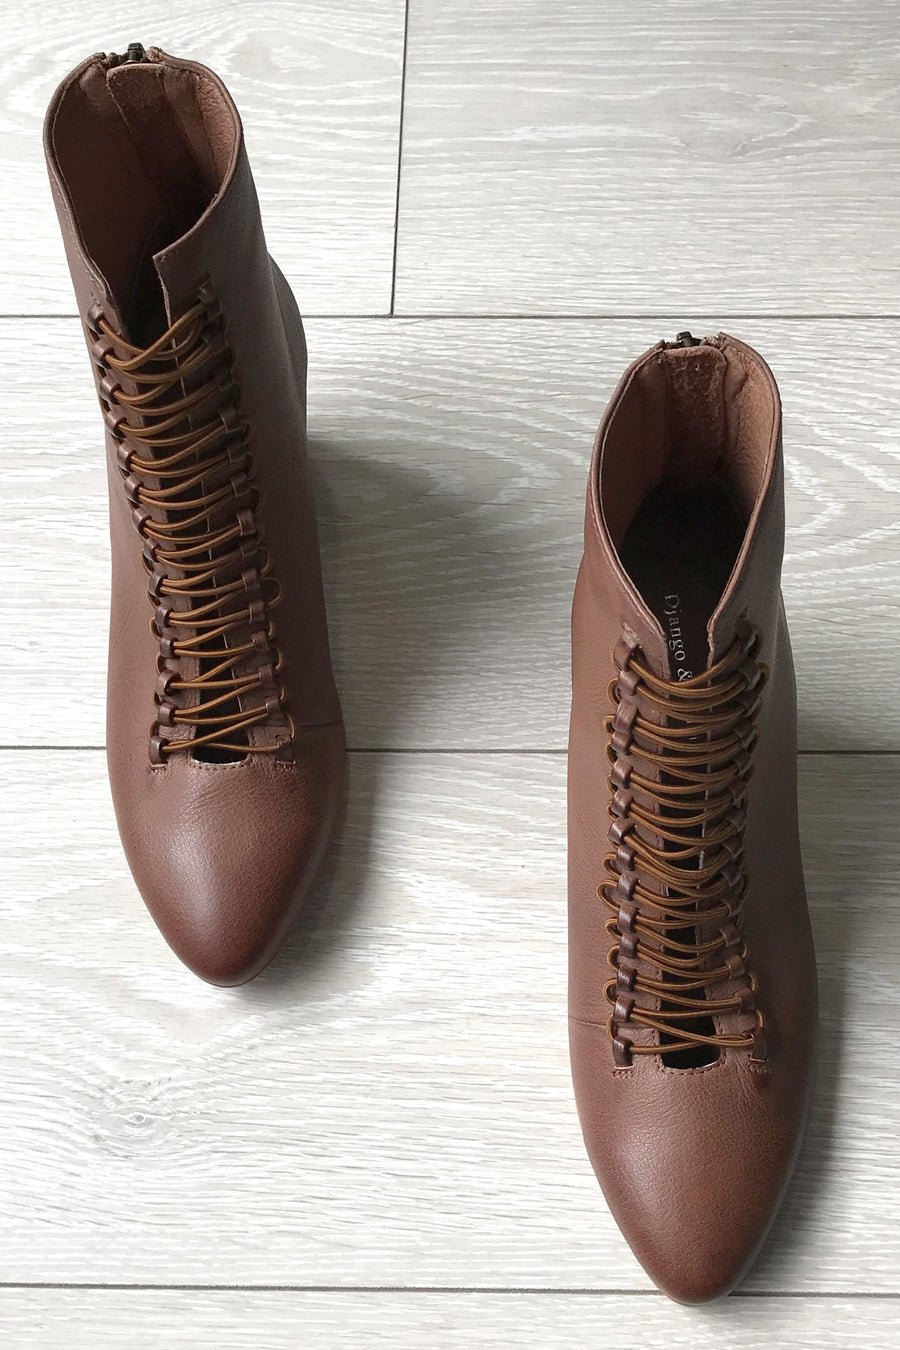 DJANGO & JULLIET -  Izorass Cognac Leather Boots - Style on Point